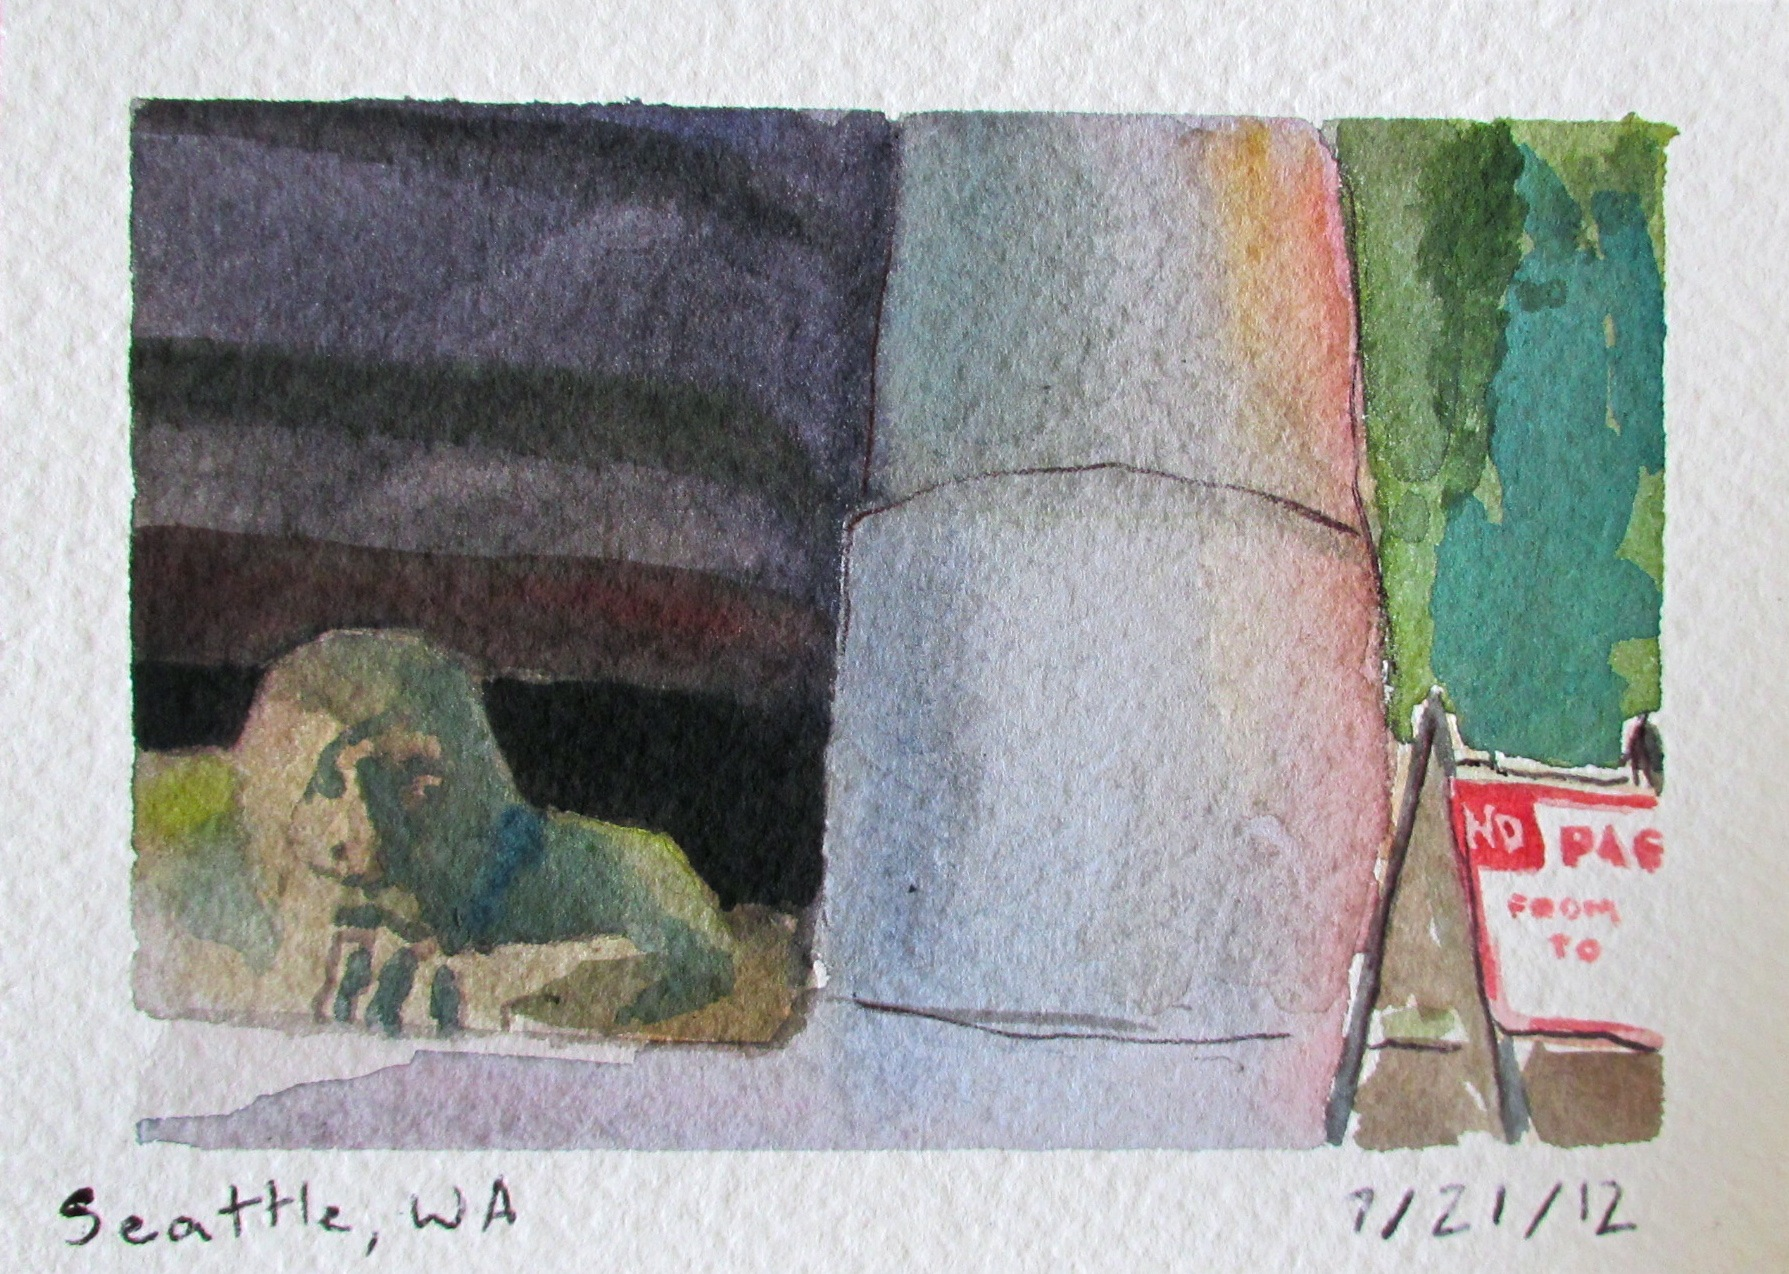 7/21/2012 Watercolor